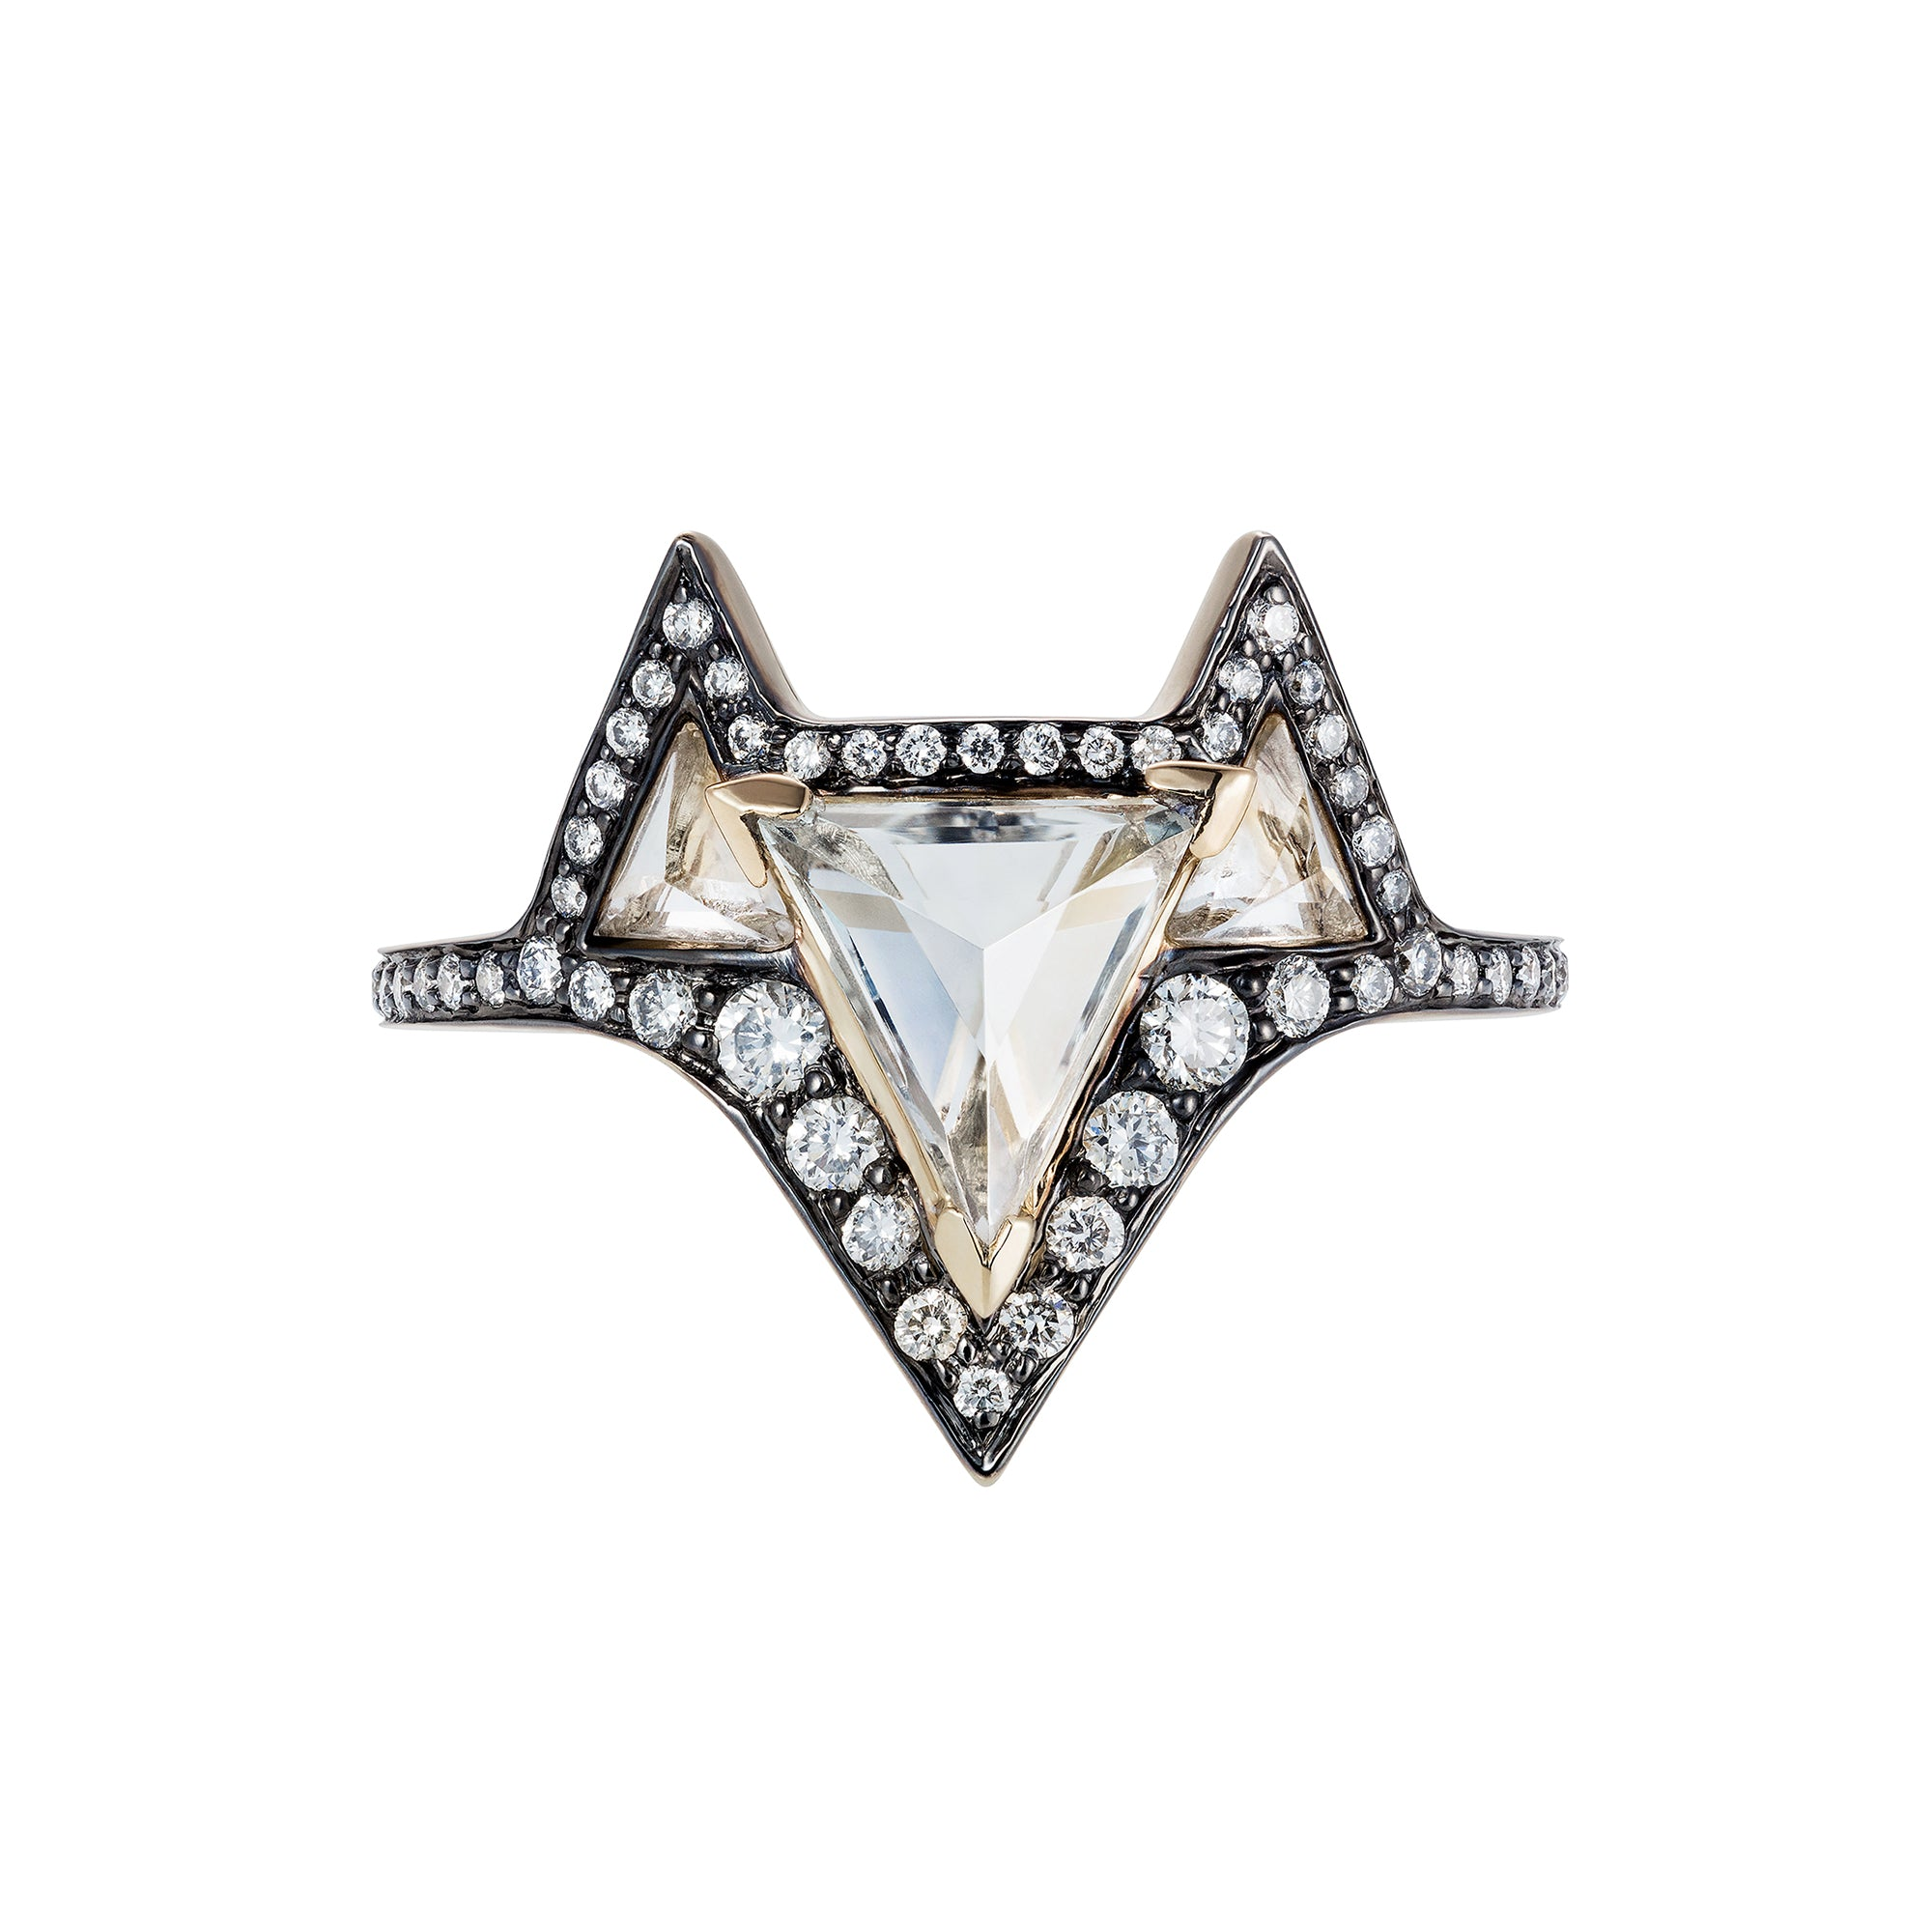 Hava Ring by Noor Fares for Broken English Jewelry